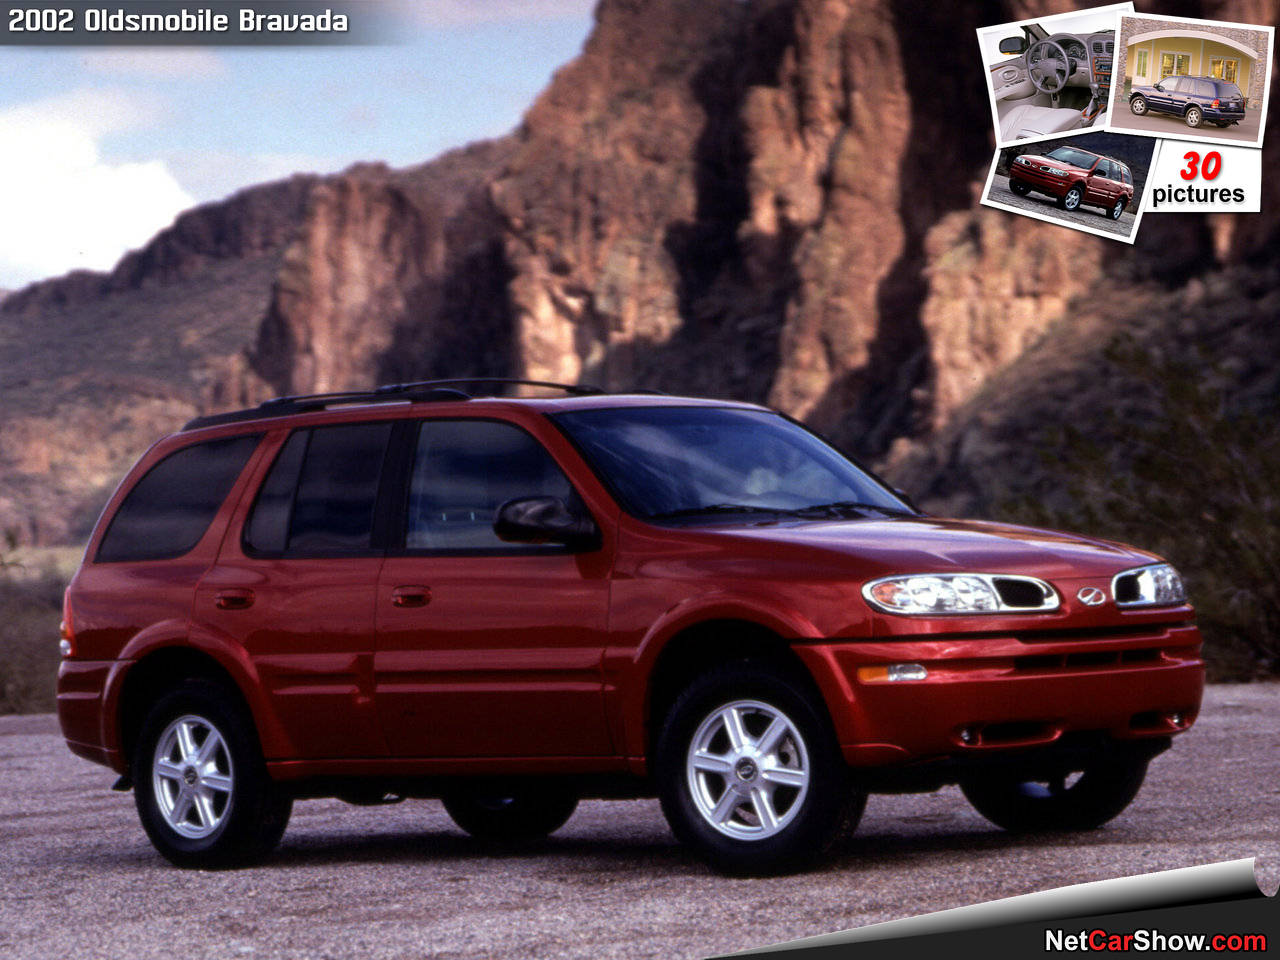 oldsmobile bravada pictures #15